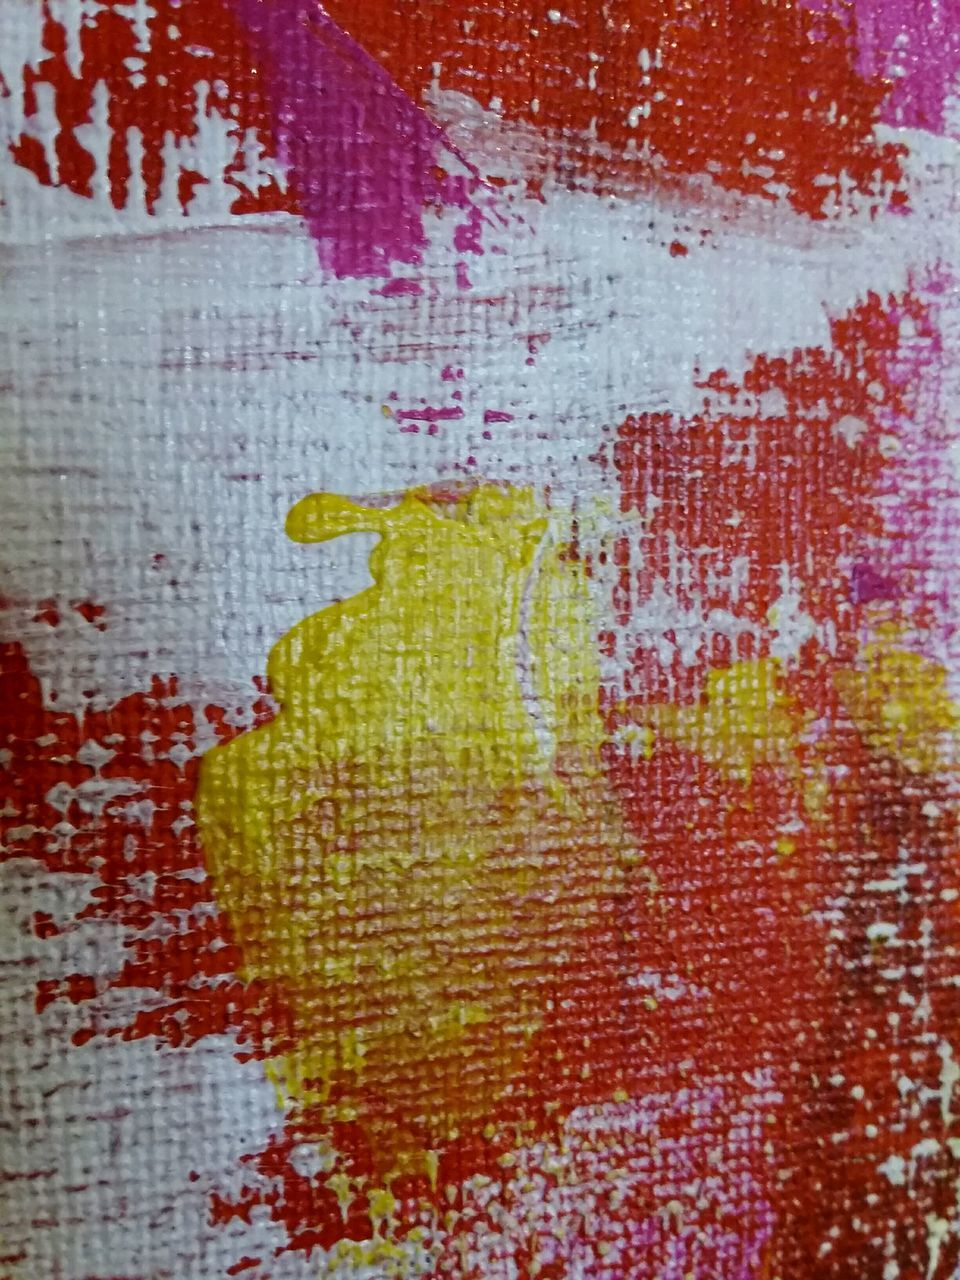 abstract, backgrounds, yellow, textured, red, full frame, paint, pattern, painted image, close-up, no people, multi colored, day, pixelated